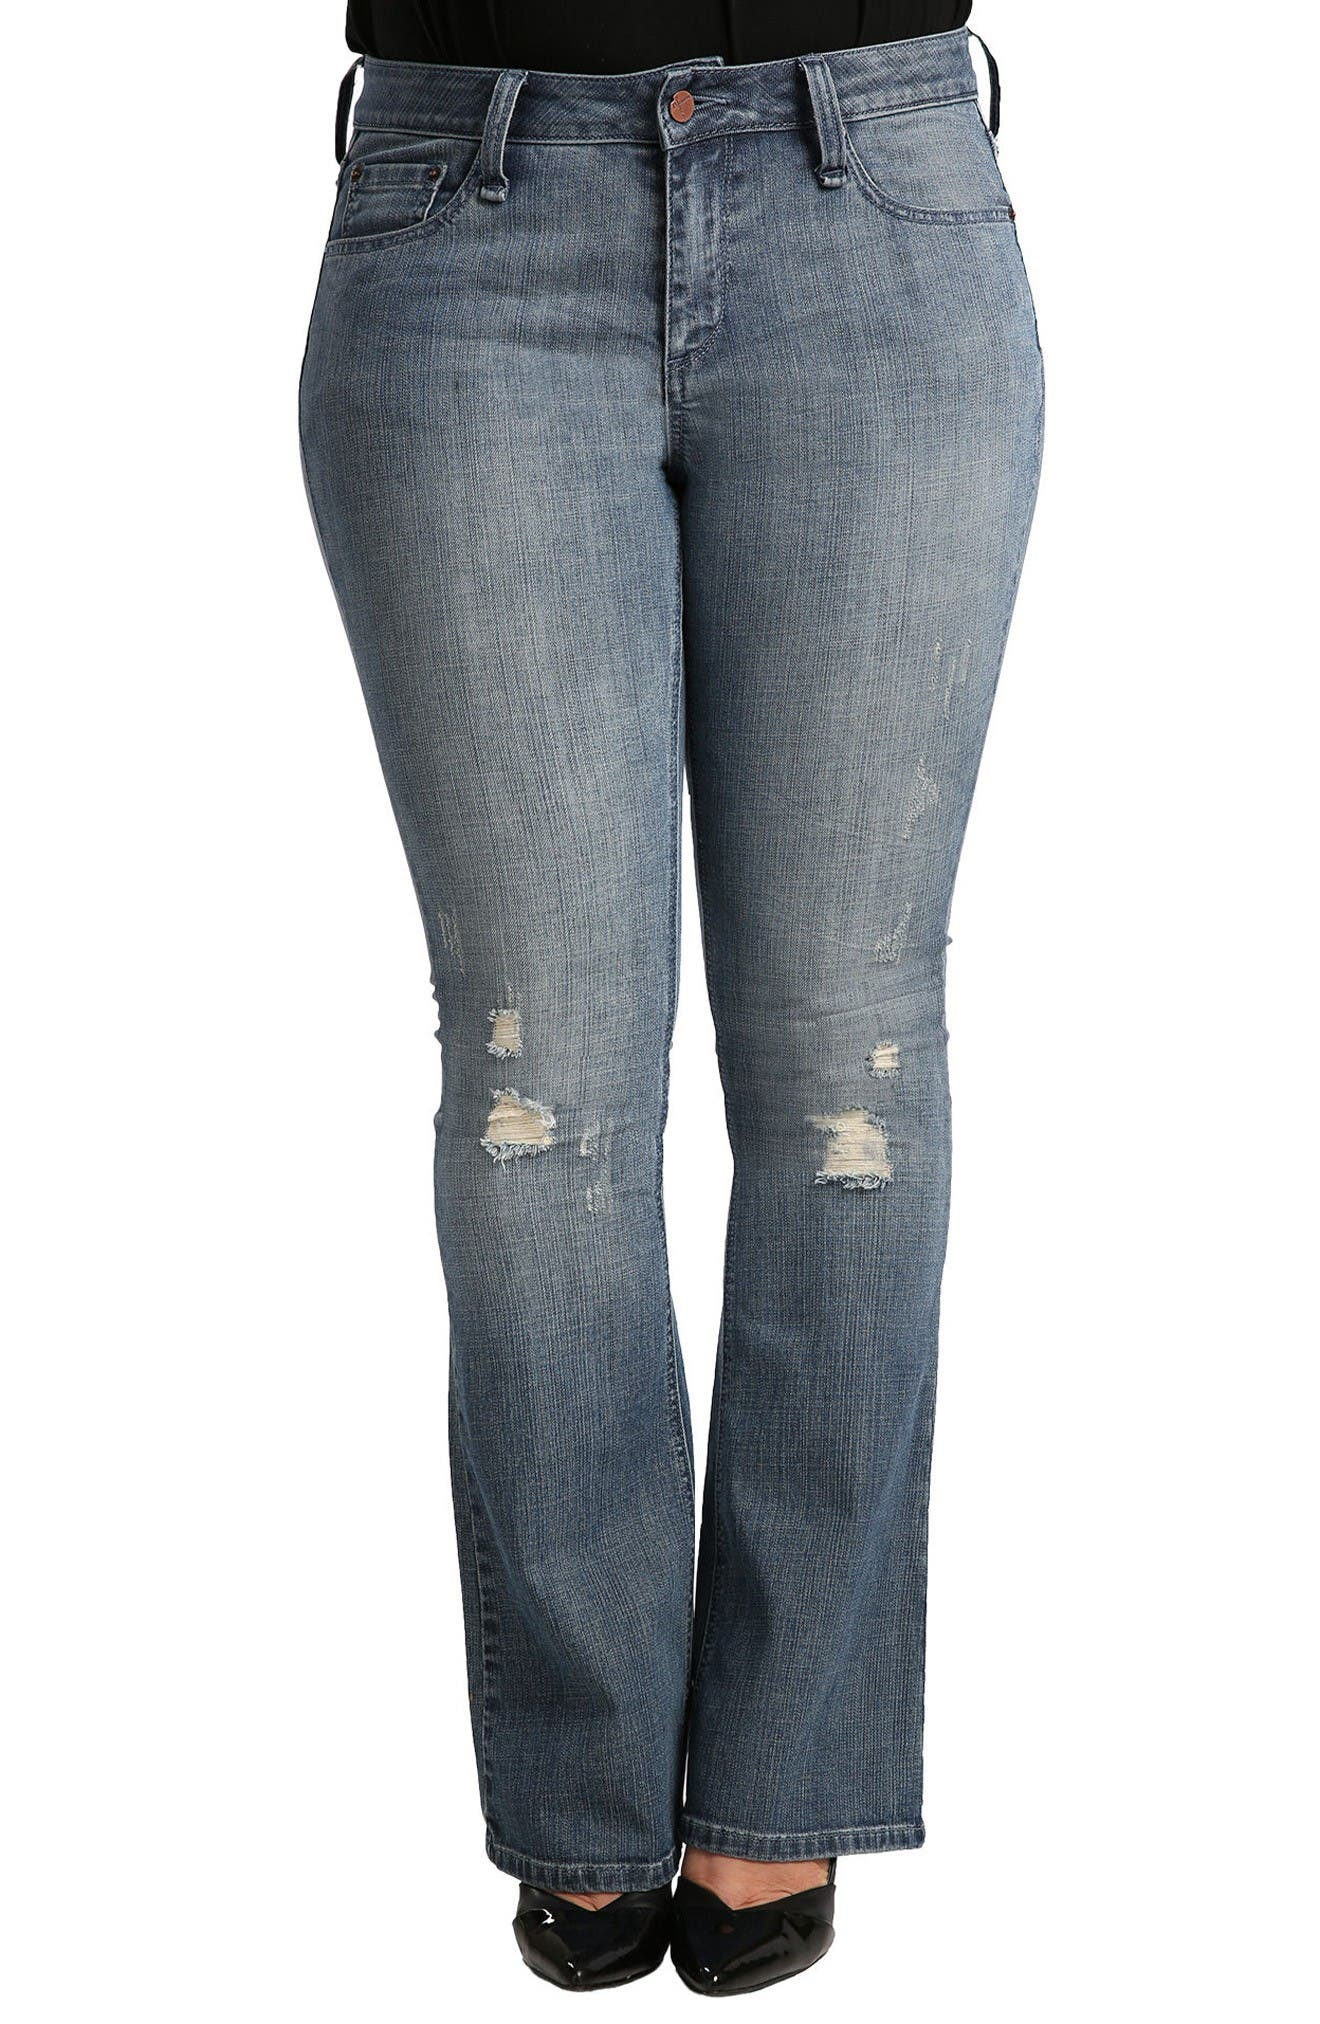 Alternate Image 1 Selected - Standards & Practices Clarice Uptown Mid Rise Bootcut Jeans (Plus Size)